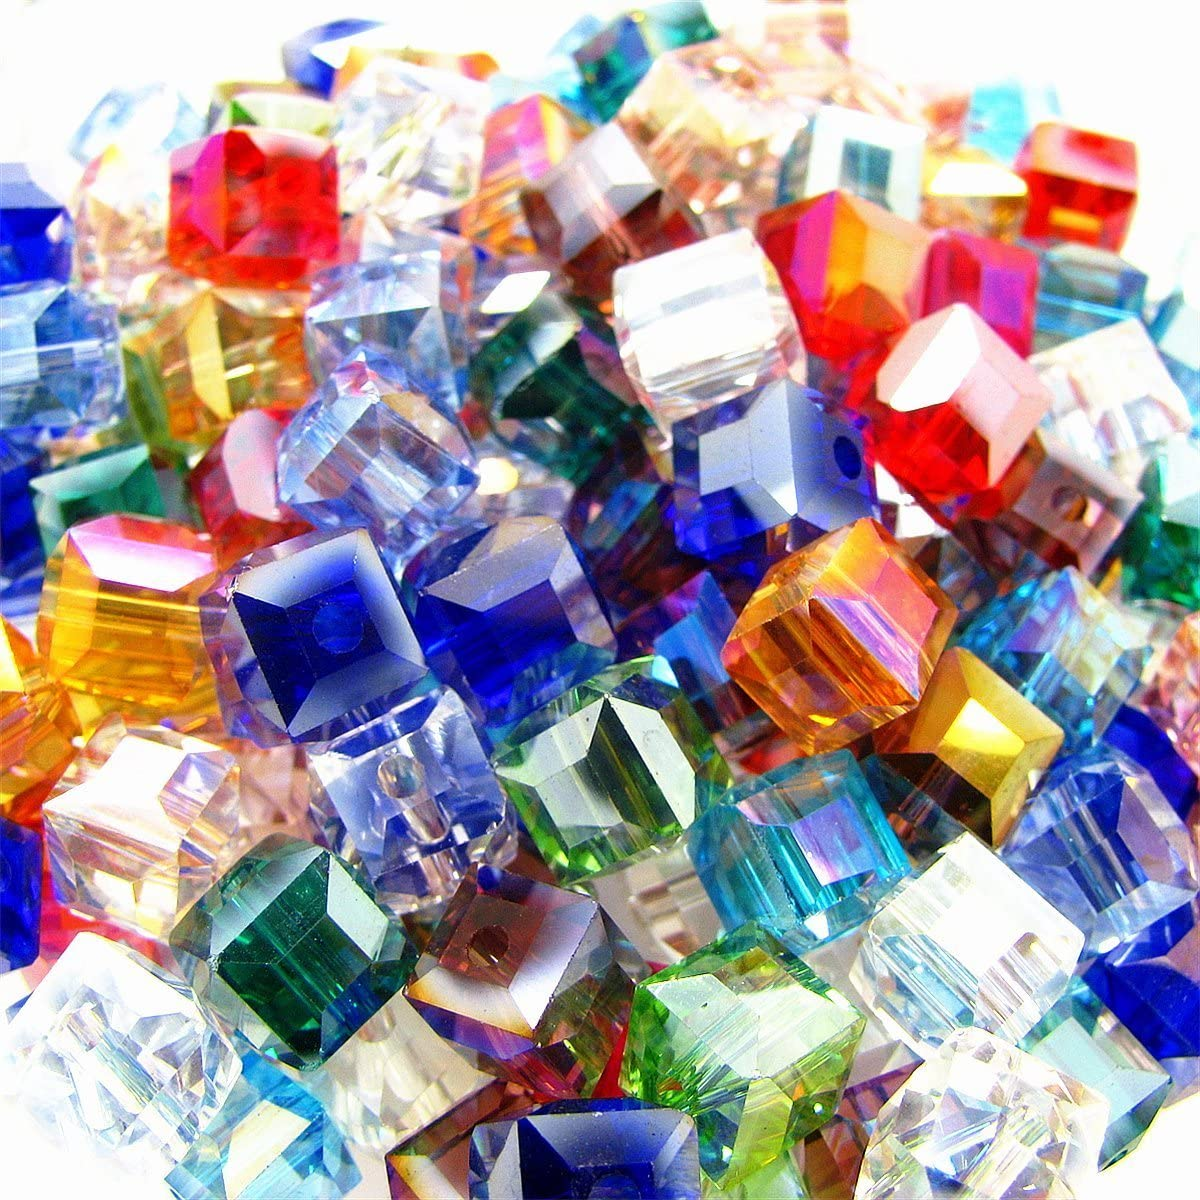 Multicolor Crystal Beads Square Glaze Glass Bead Quartz Loose Beads for Jewelry Making Accessory (6mm-200pcs)